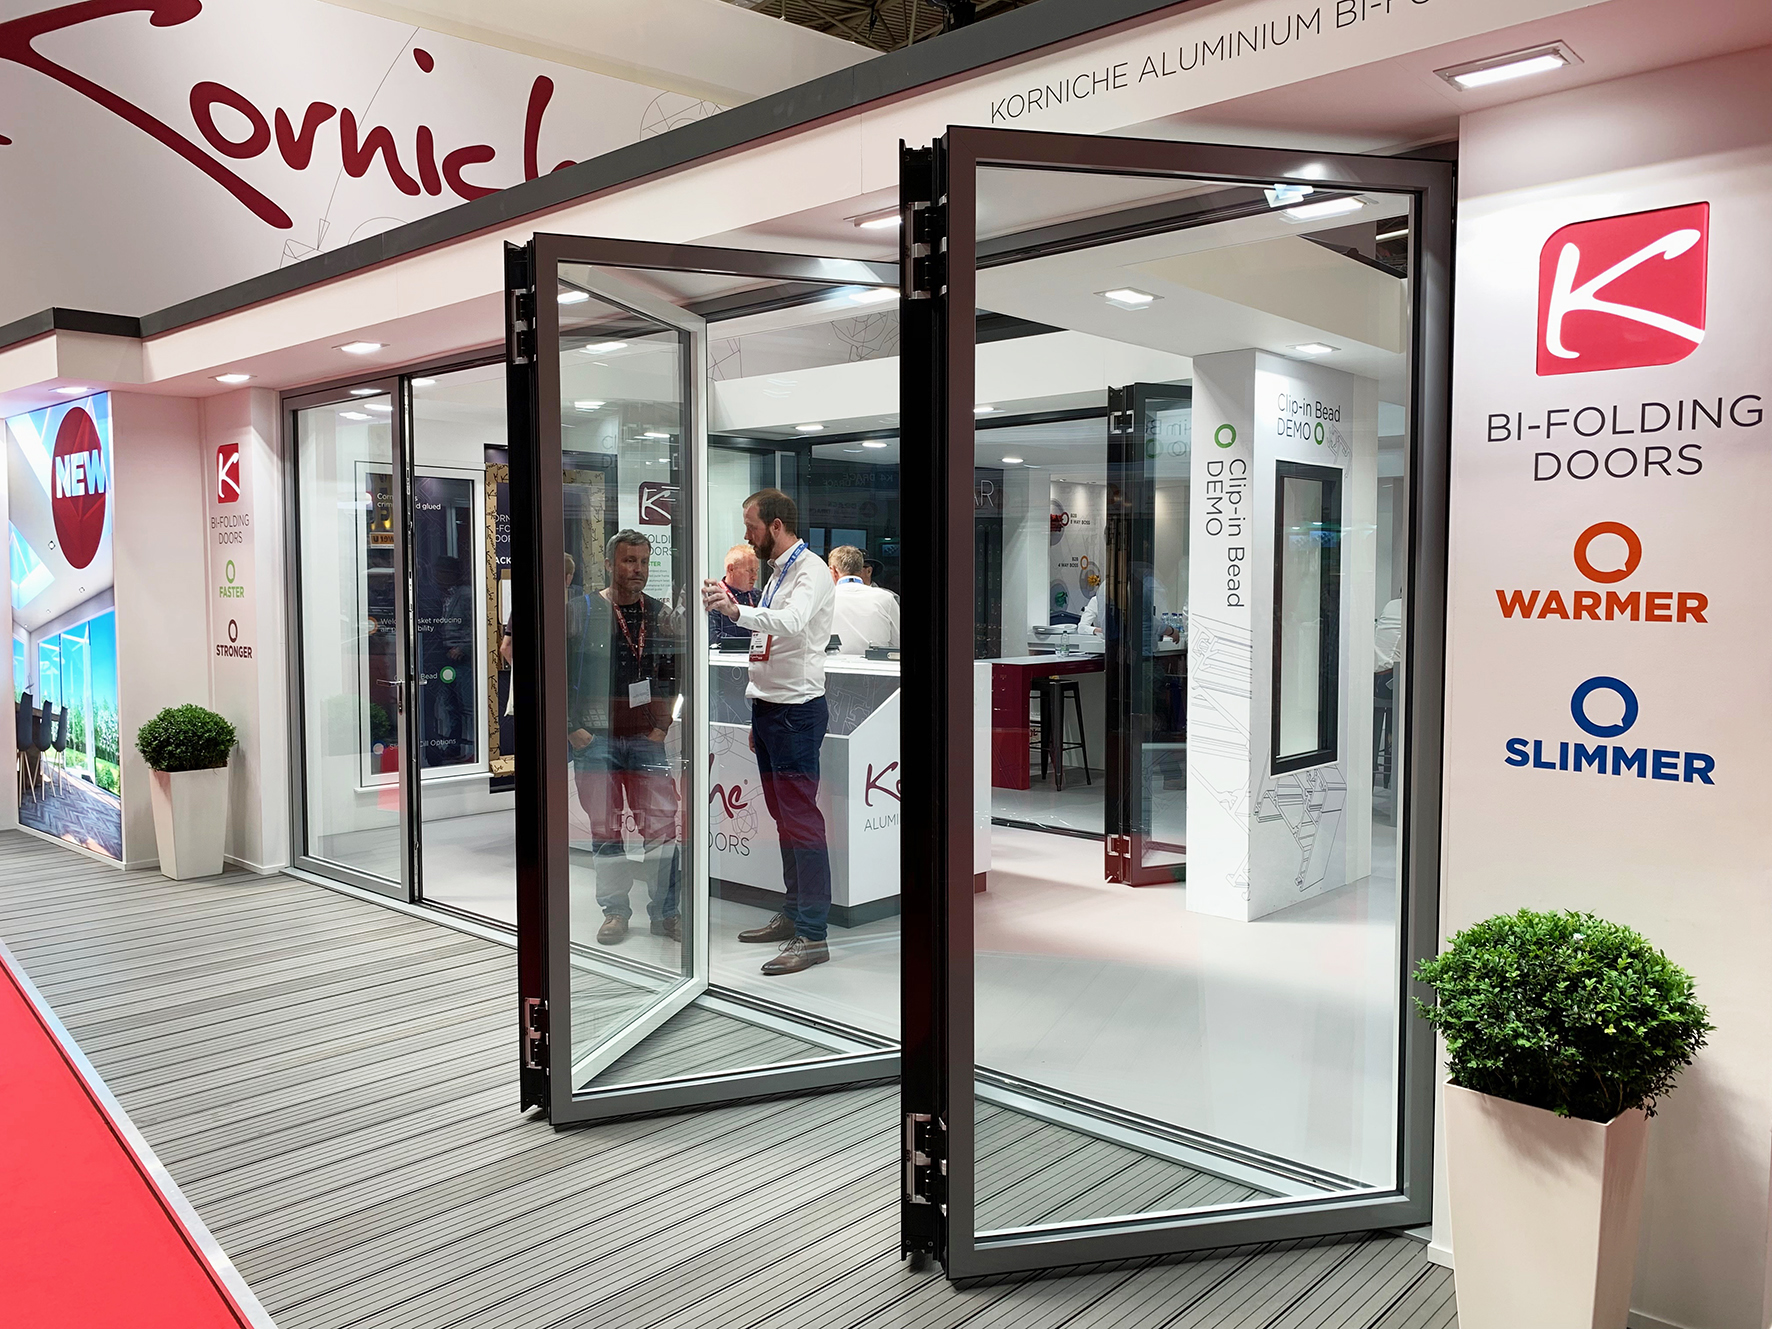 Korniche Bi-Folding Doors Wow at FIT Show - Roofing Today